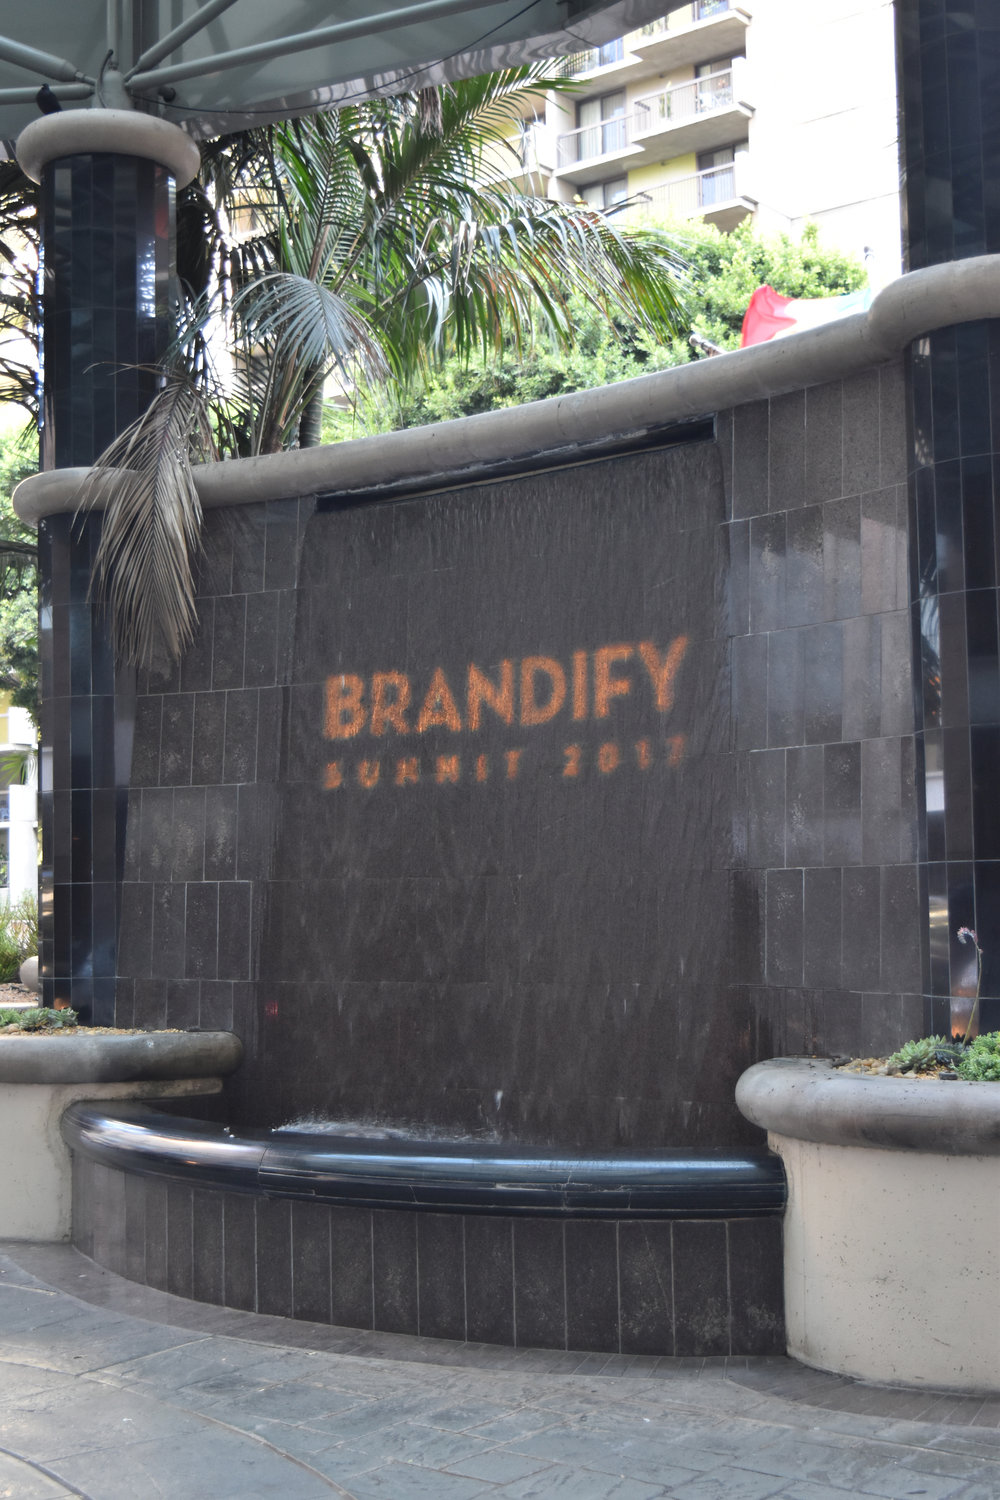 BRANDIFY SUMMIT 2017